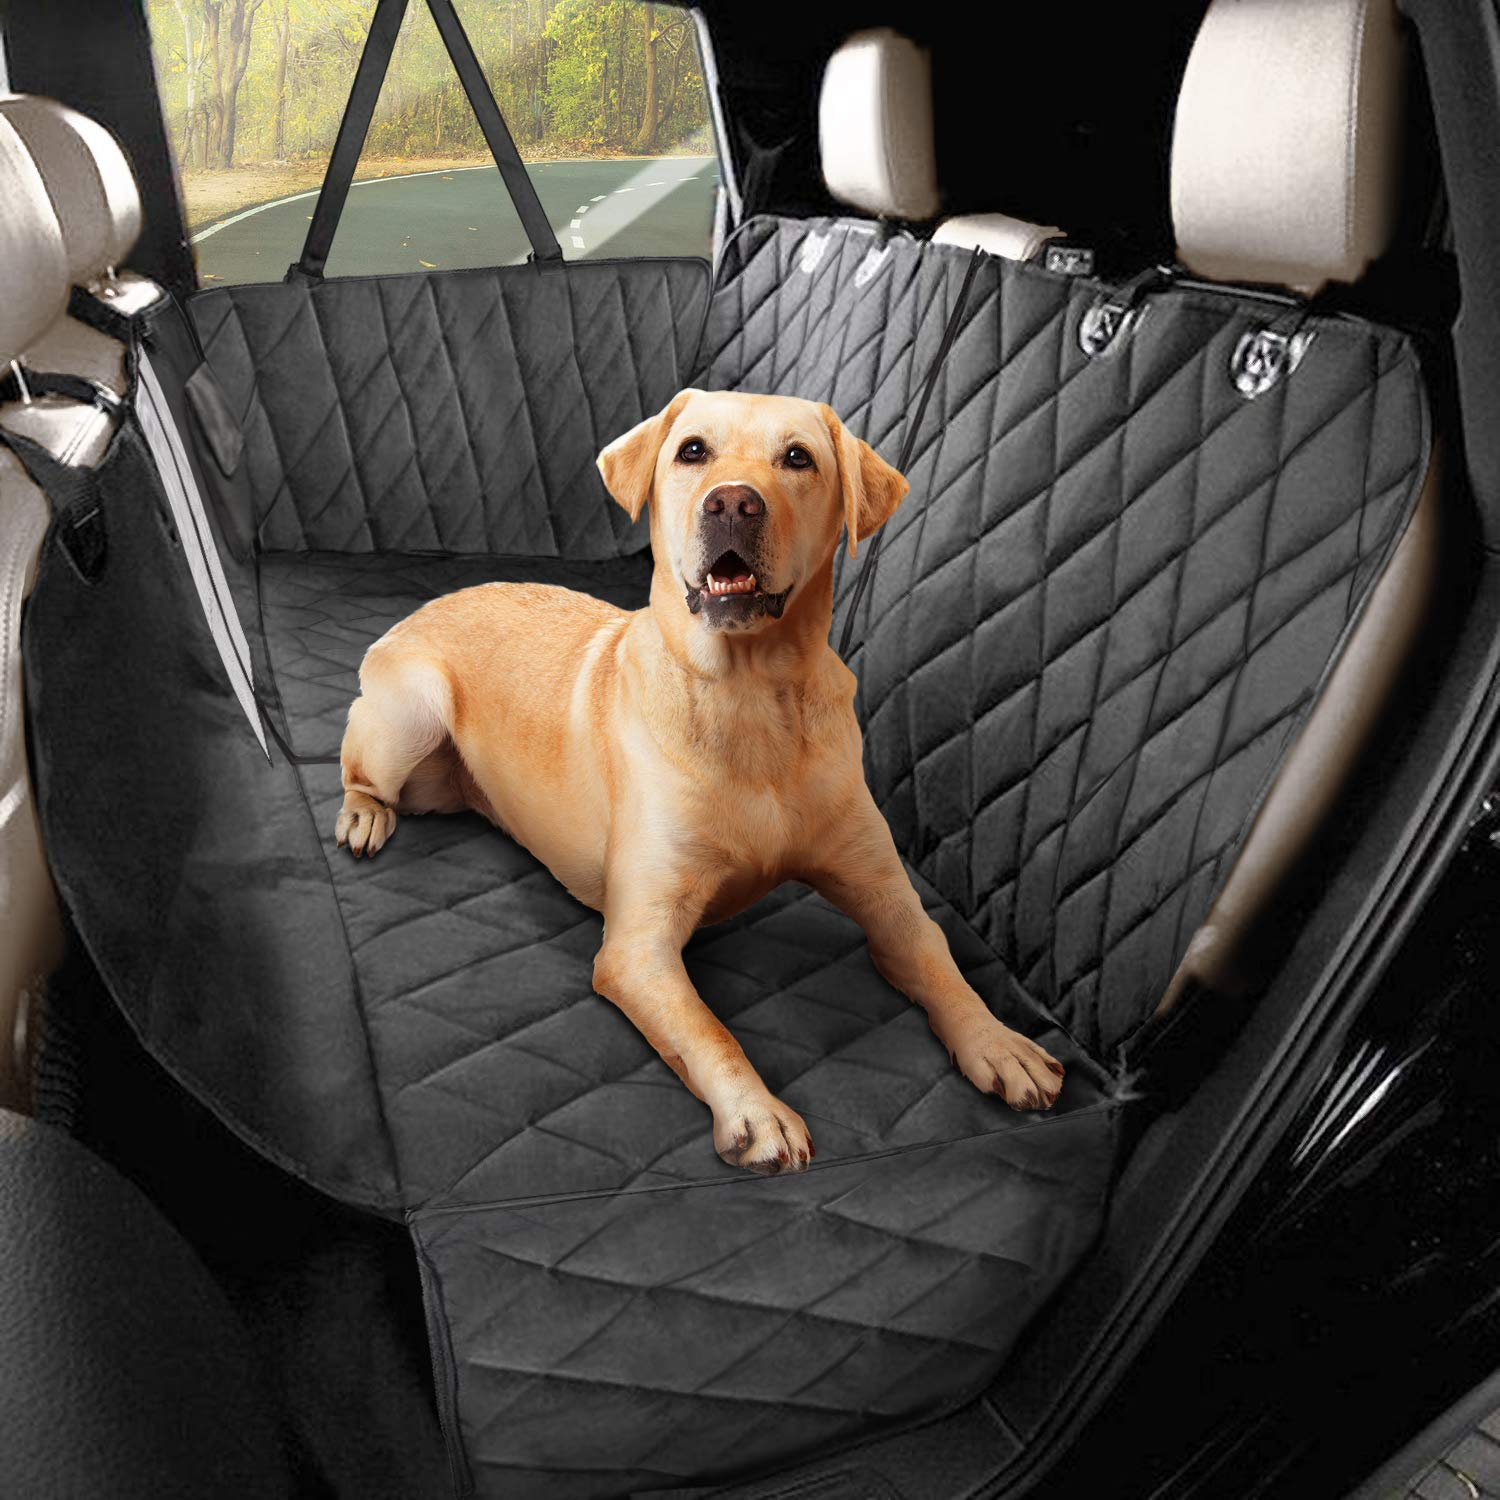 universal for any car padded cover with side protectors 165 * 142 * 50 cm smartpeas Dog car seat cover XXL robust material also for car trunks detachable